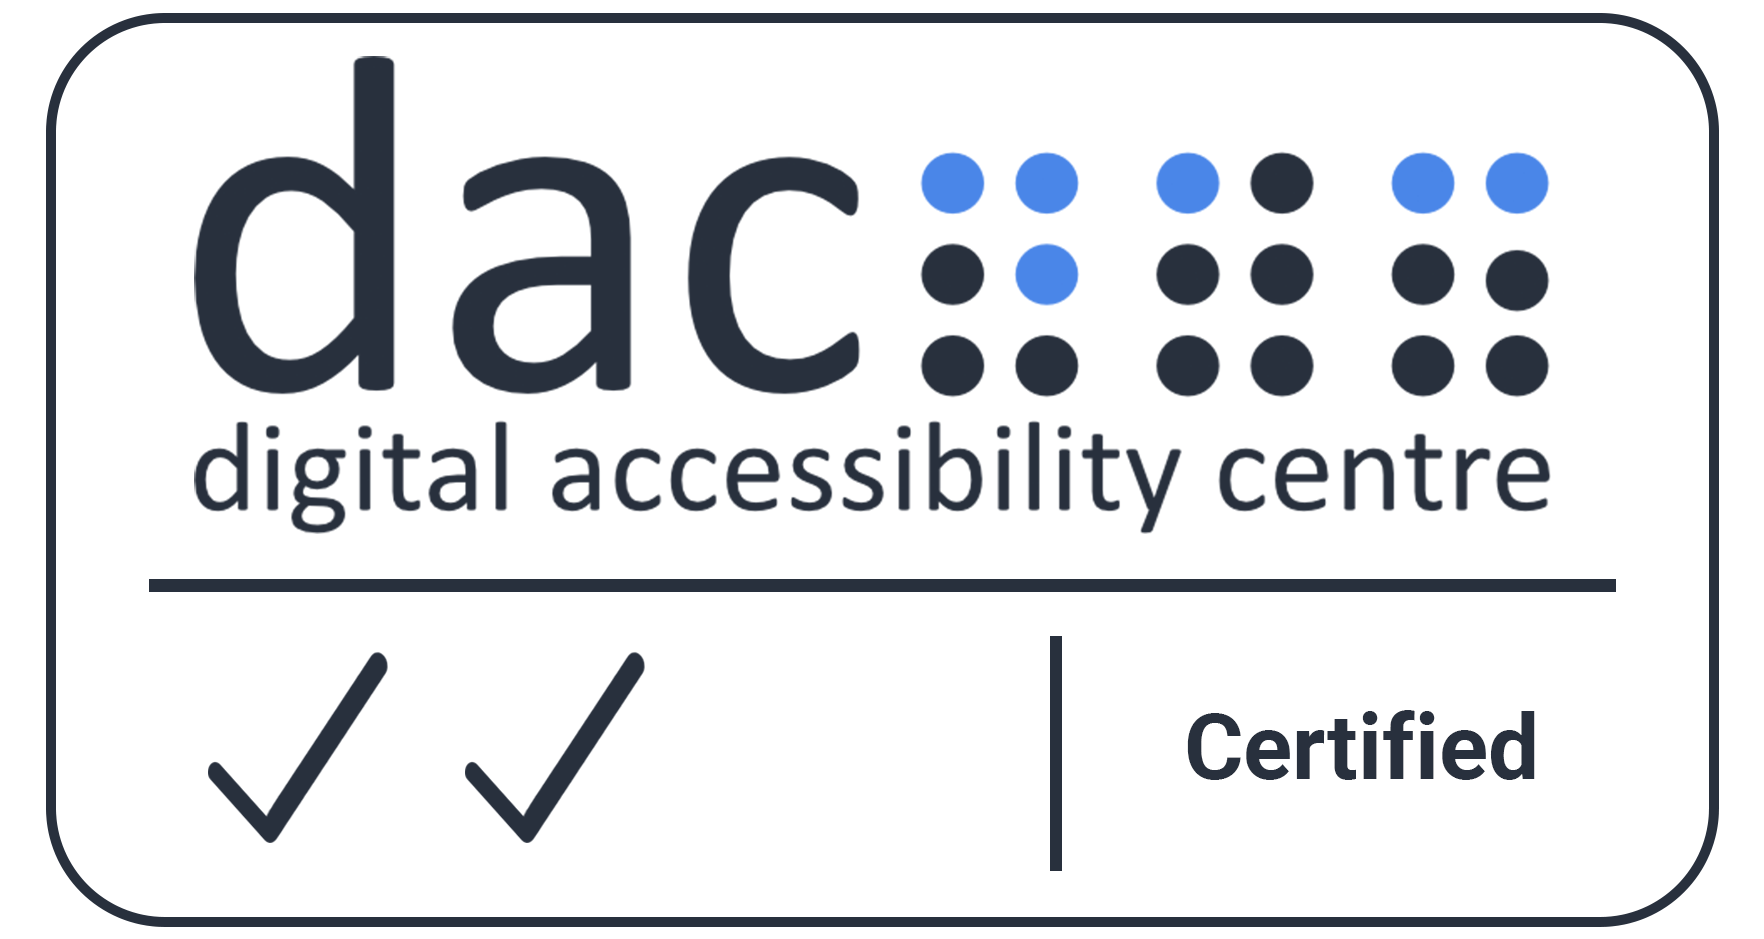 Digital Accessibility Centre Accreditation Certificate [Opens in a new window]